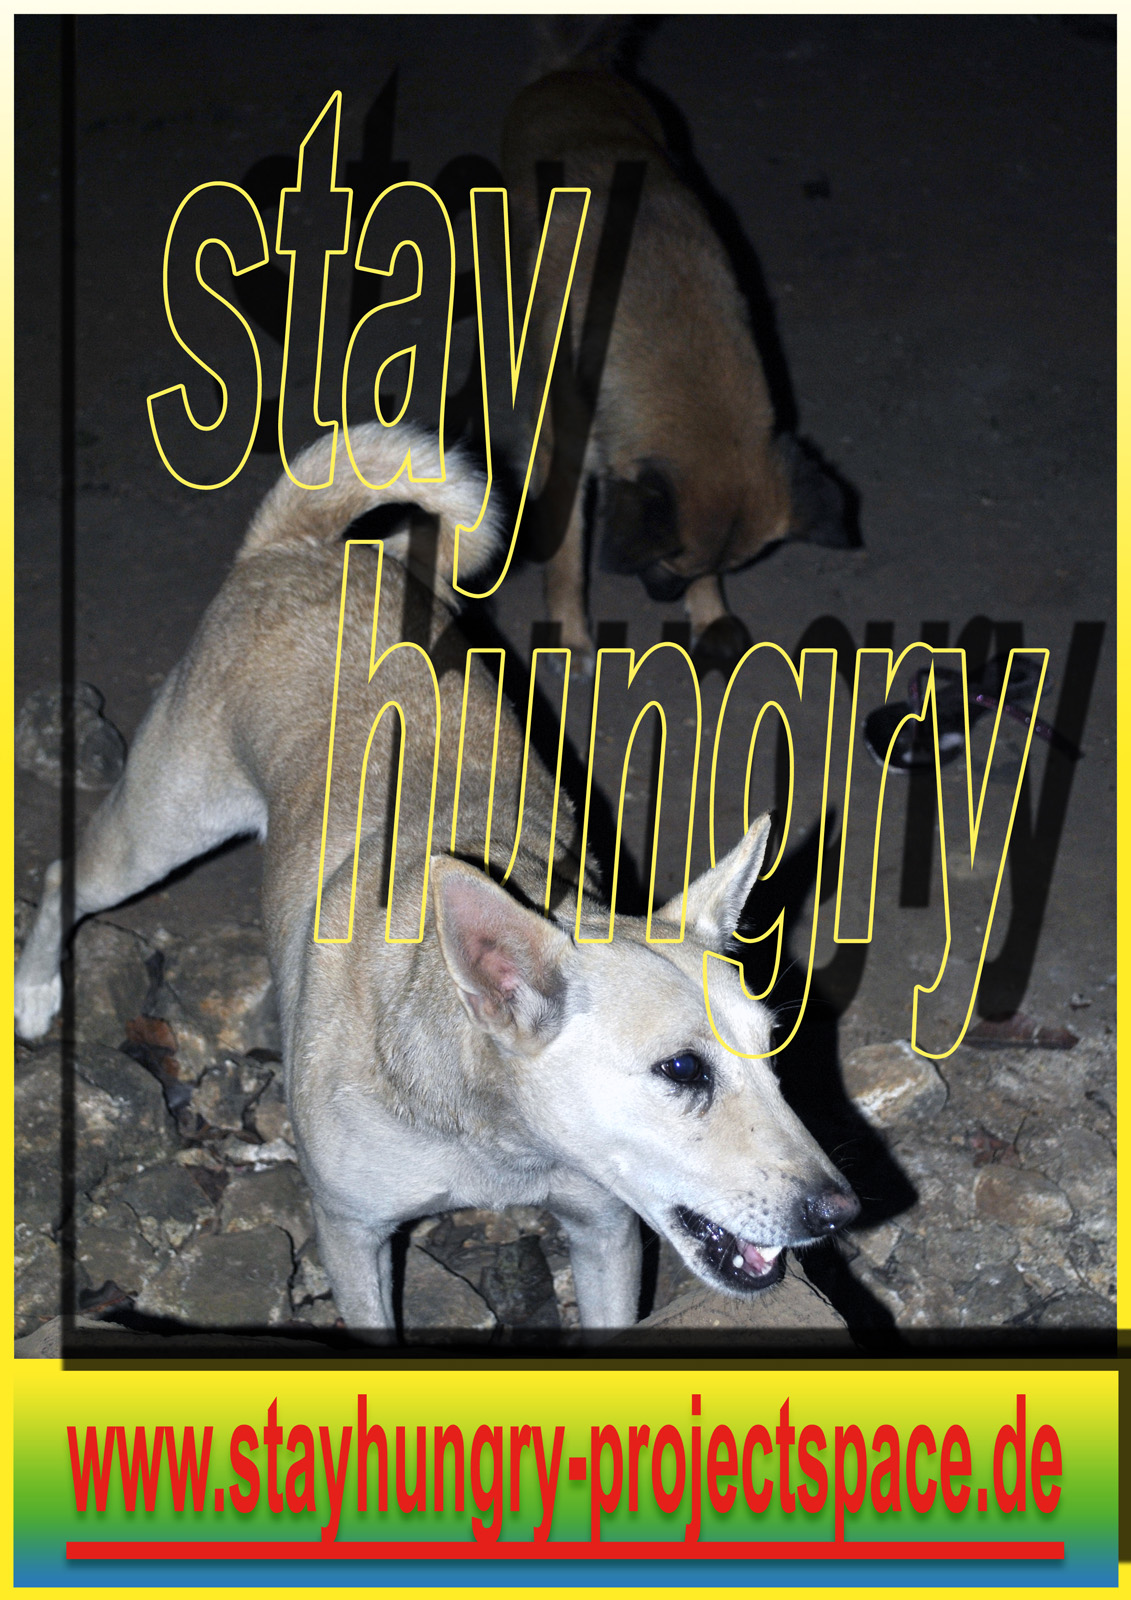 stay hungry Berlin Art Michel Aniol Meike Kuhnert